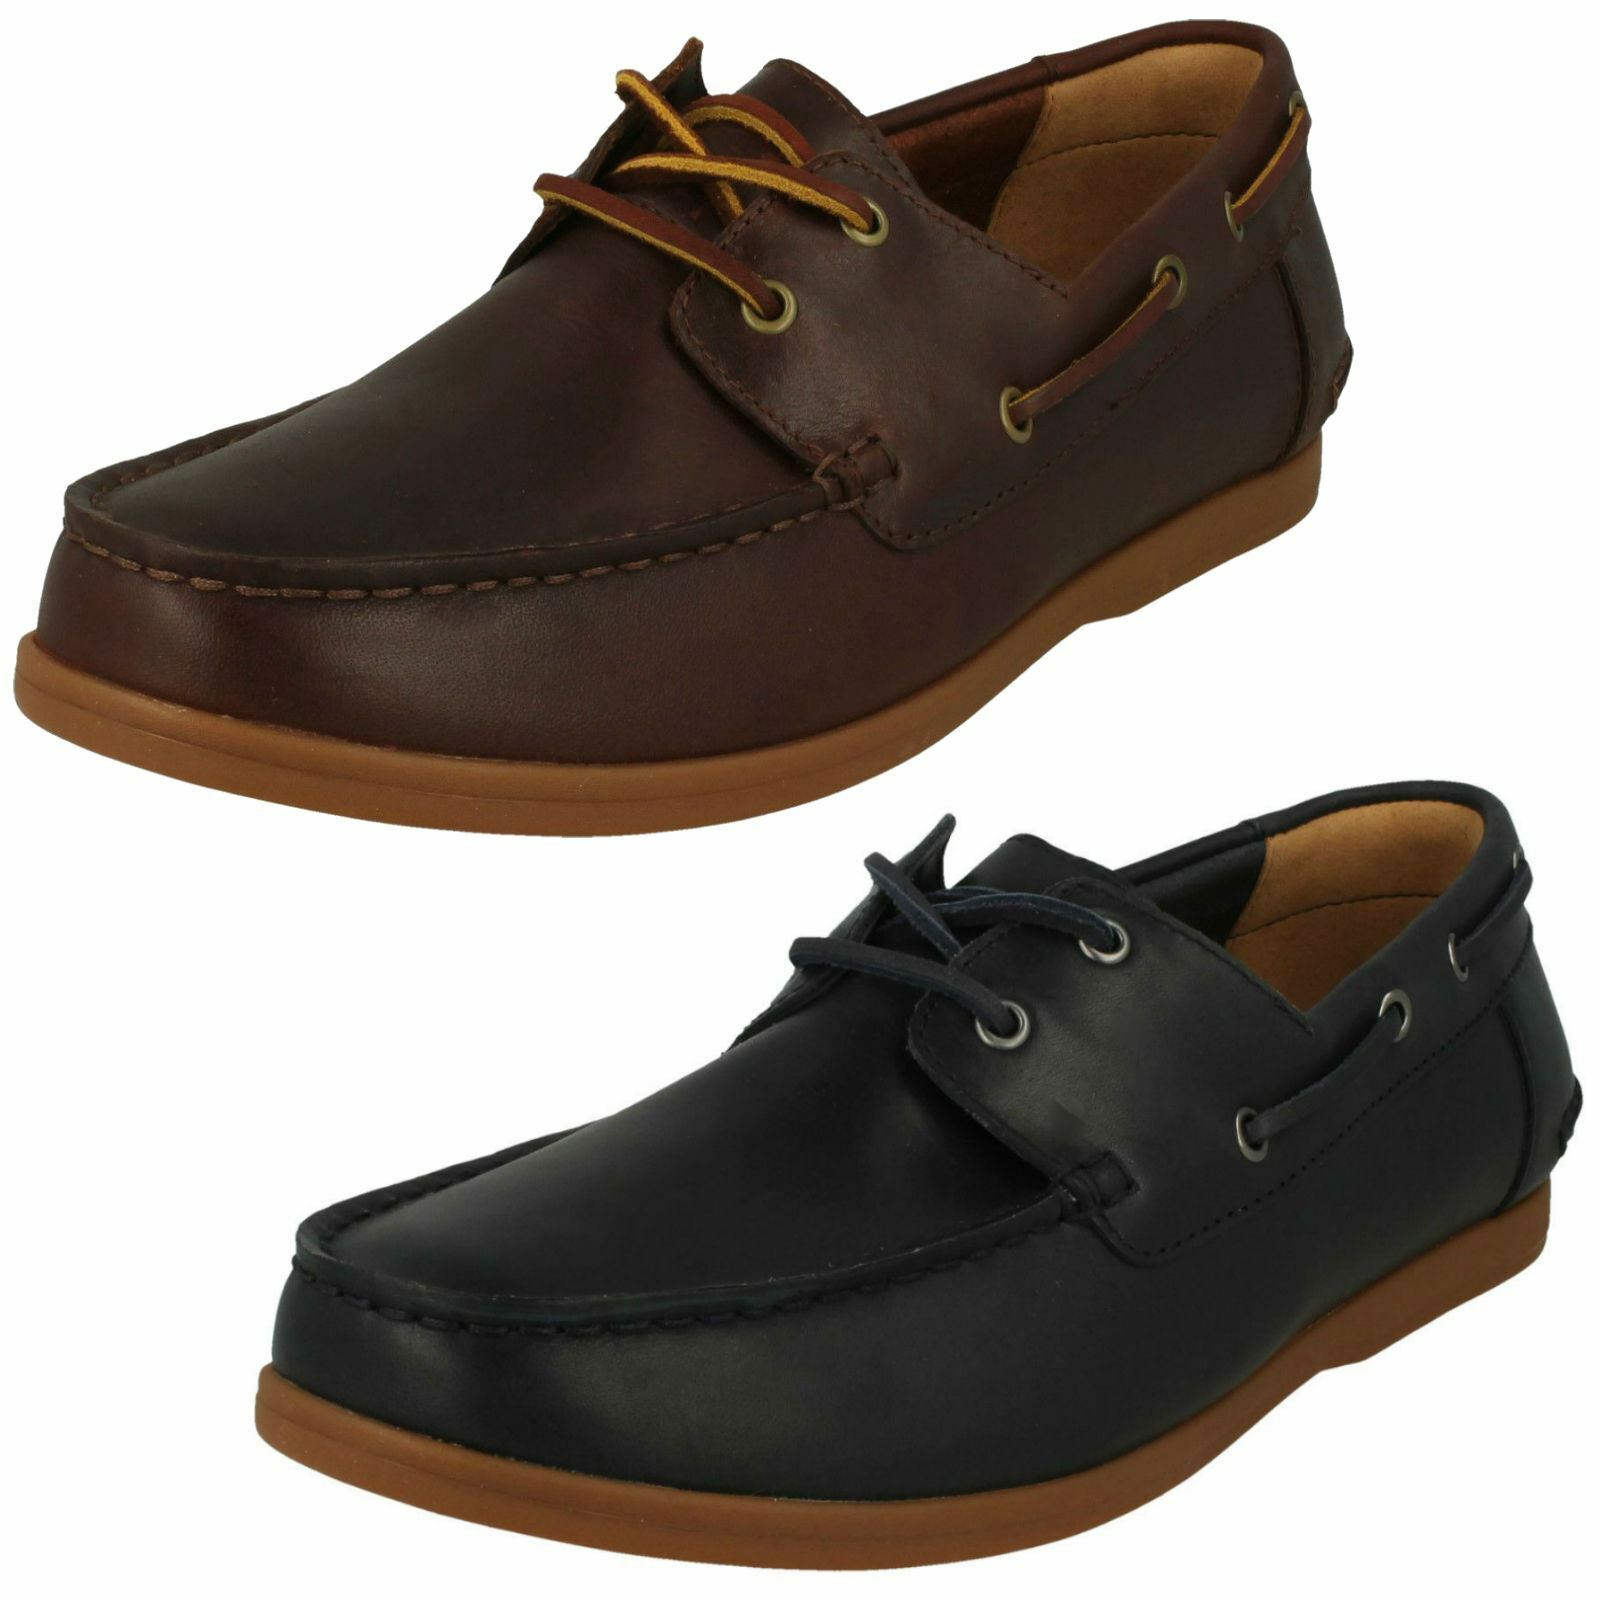 Mens Clarks Lace Up Leather Deck   Boat Style schuhe - Morven Sail   | Wirtschaft